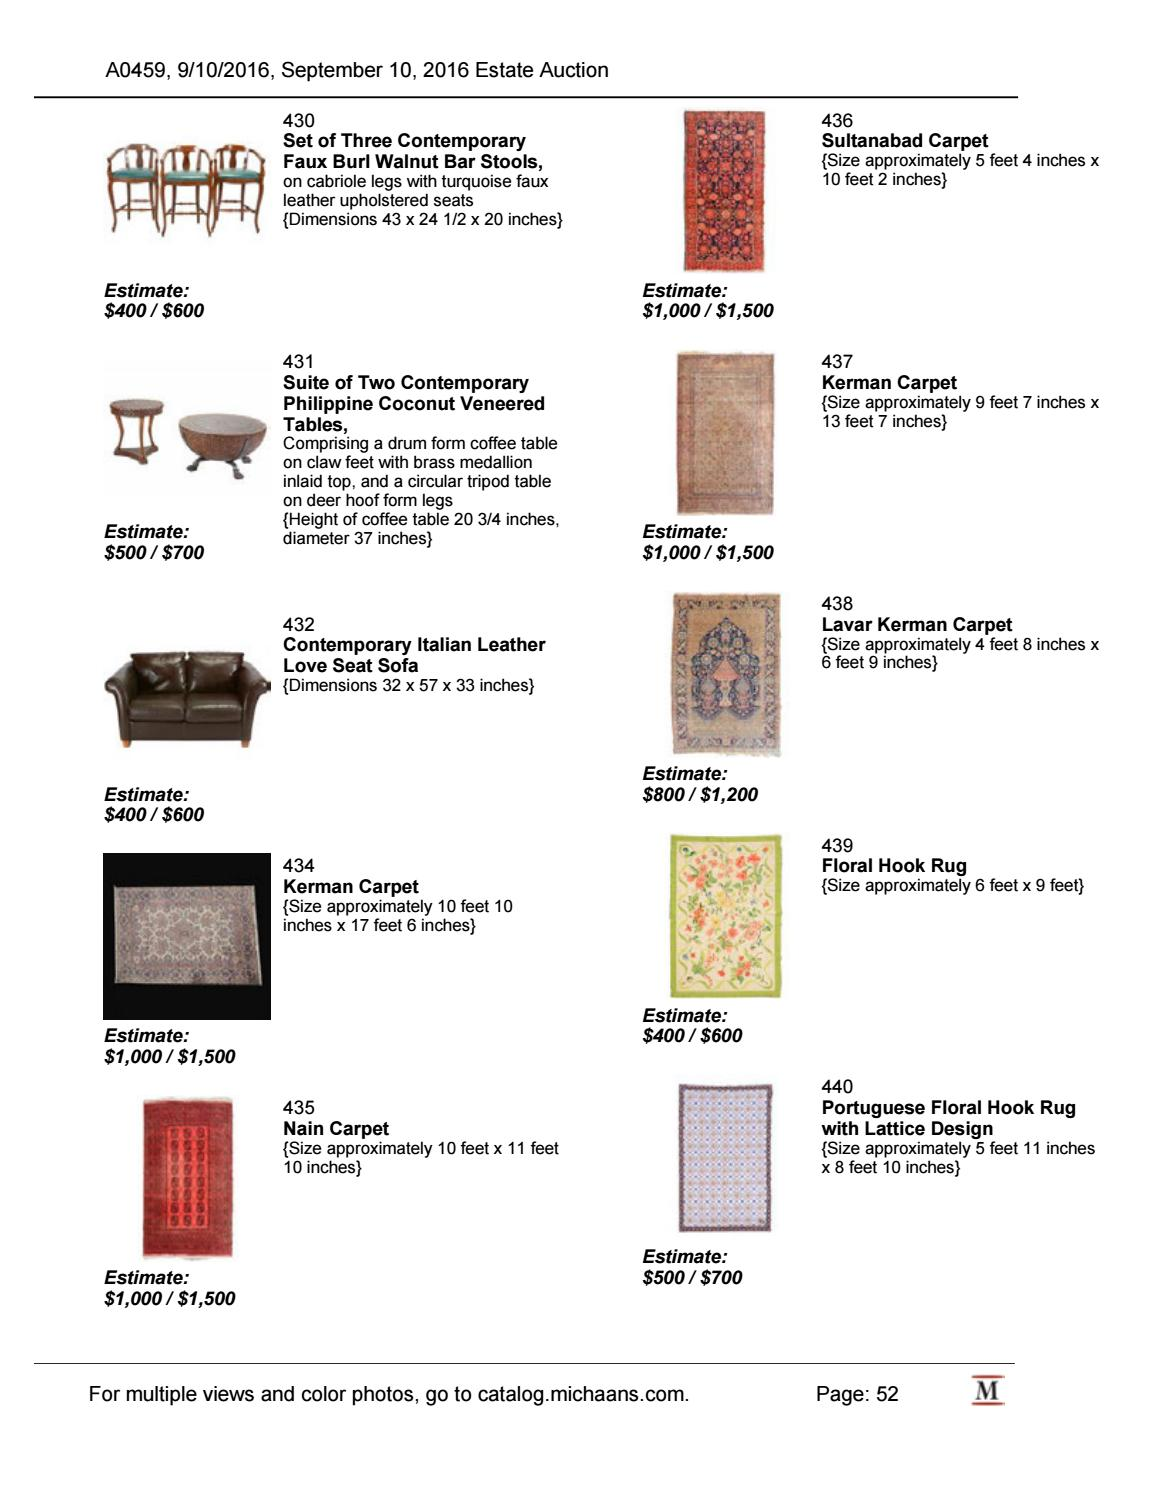 September Estate Auction Catalog By Michaans Auctions